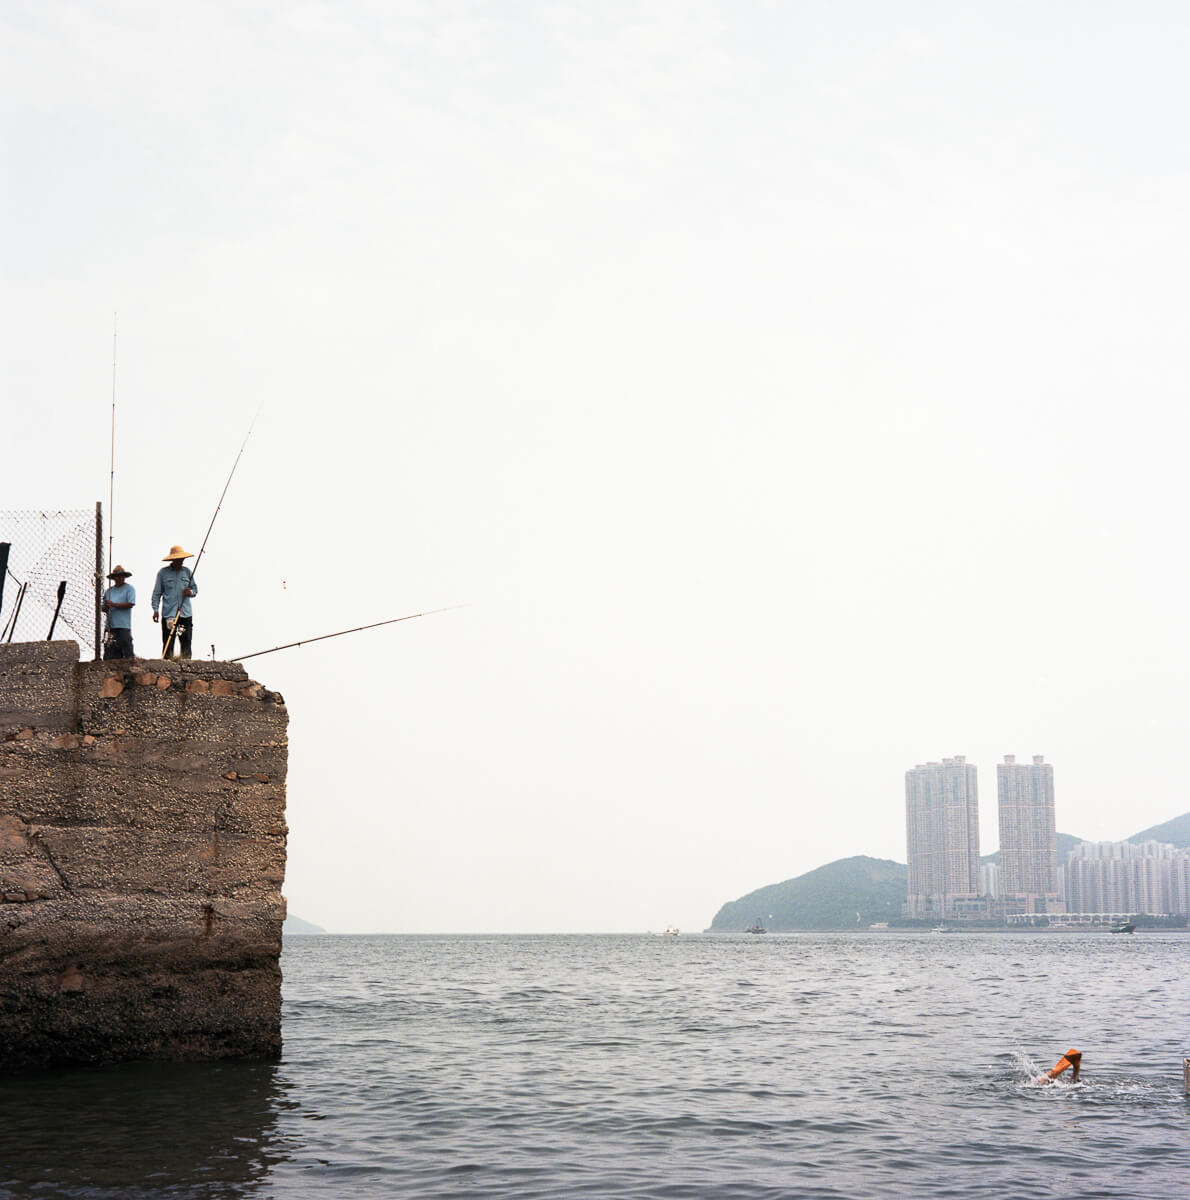 三家村-鋰魚門-fisherman-fishing-cliff-Portra-400-iso400-Hong-Kong-HK-Lei-Yu-Mun-Mamiya-C330-80mm-f2.8-medium-format-120-Analog-film-review